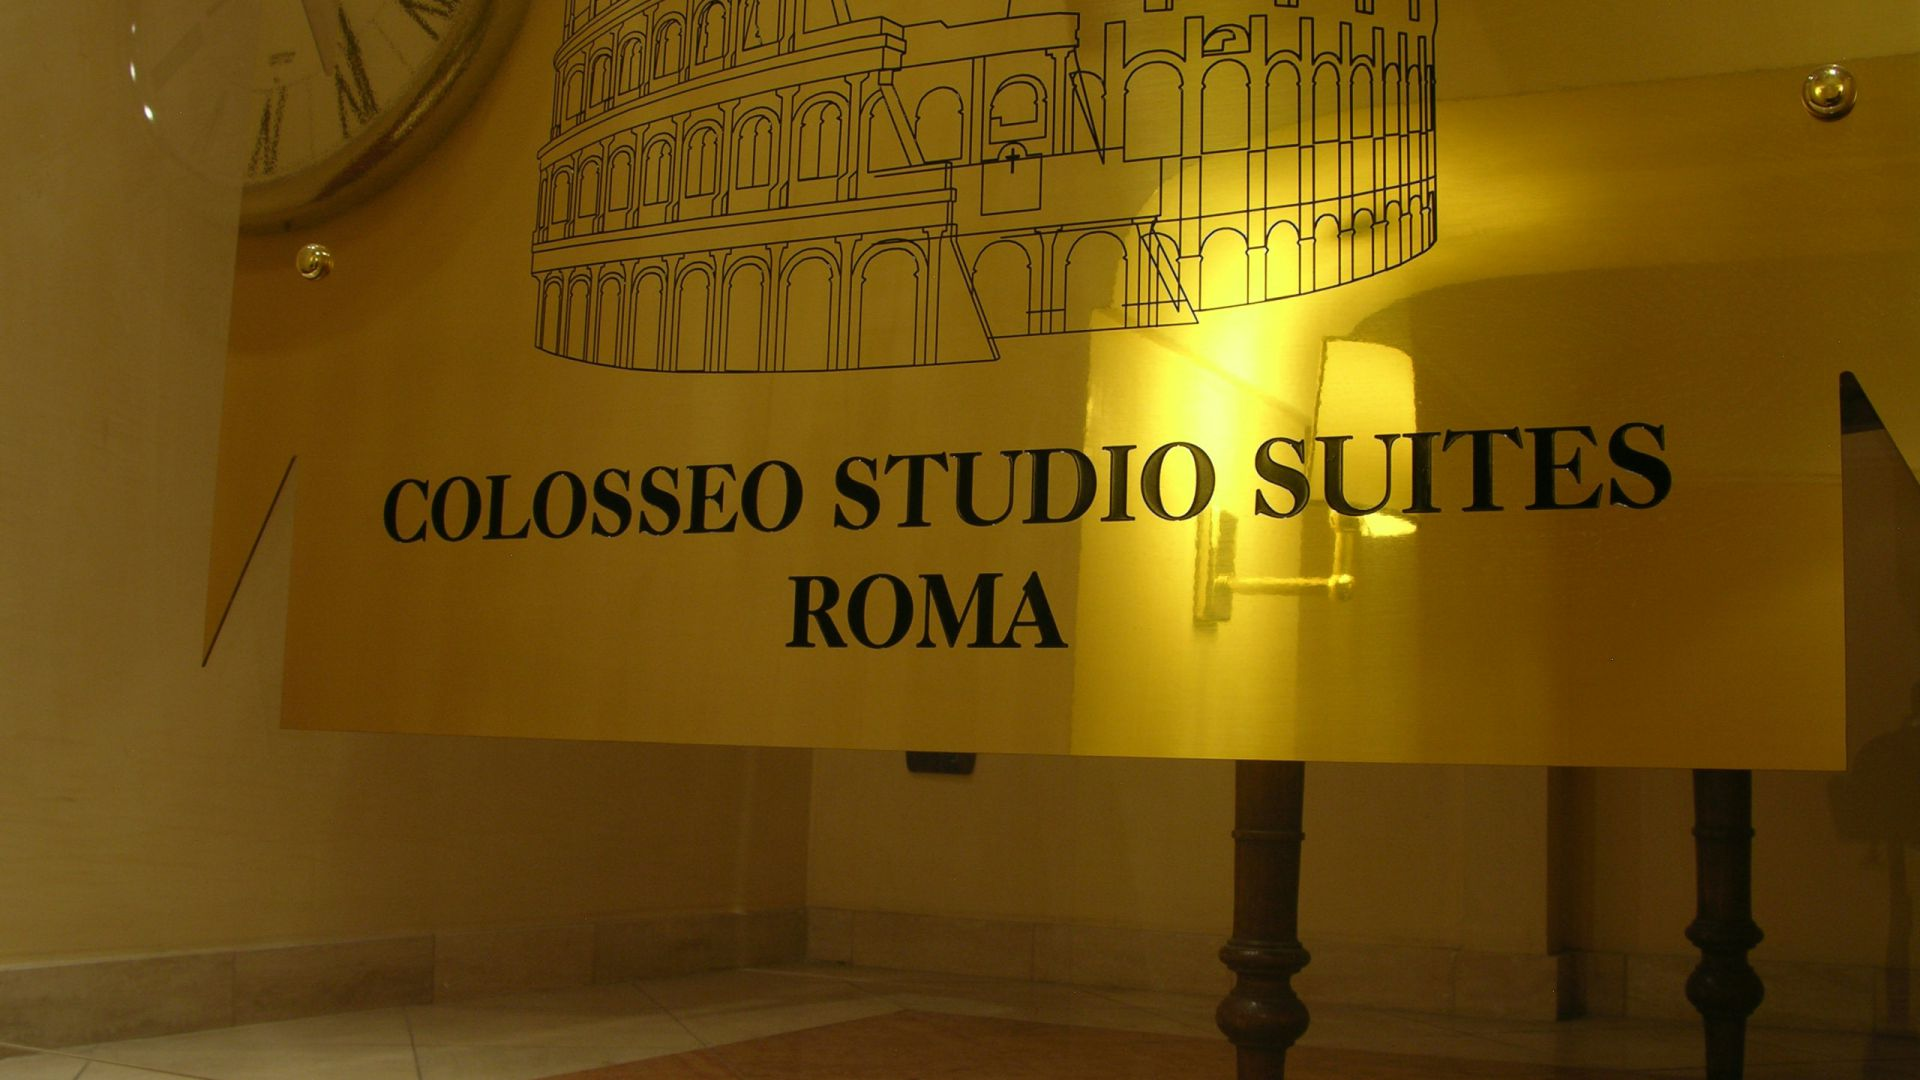 colosseo-suites-rome-externo-03